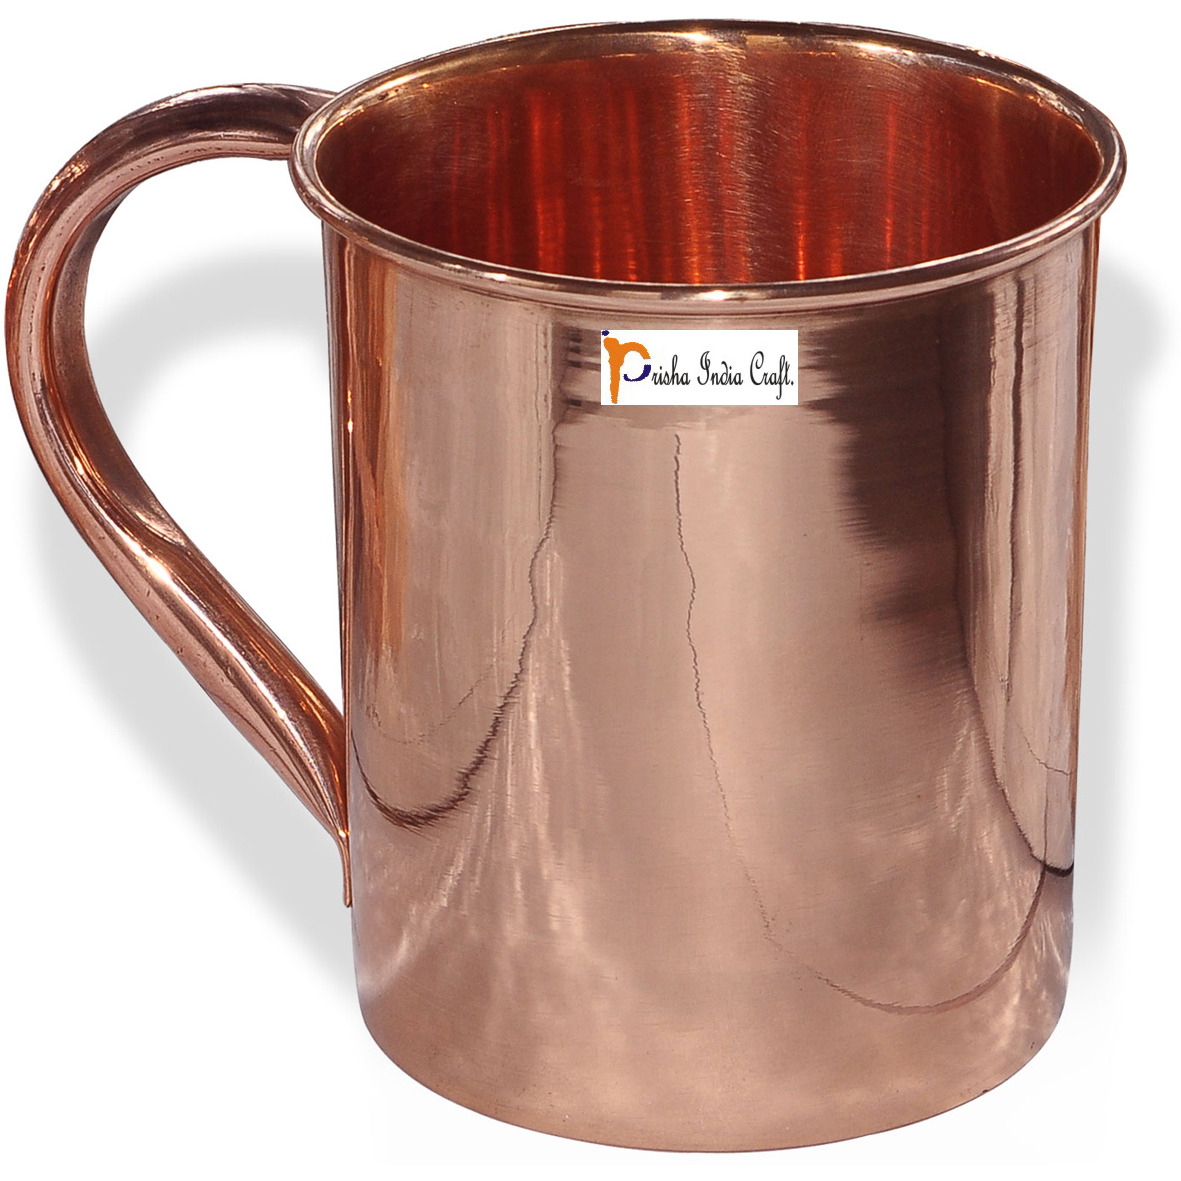 Set of 4 - Prisha India Craft B.Copper Mug for Moscow Mules 450 ML / 15 oz - 100% pure copper - Lacquered Finish Mule Cup, Moscow Mule Cocktail Cup, Copper Mugs, Cocktail Mugs with No Inner Linings